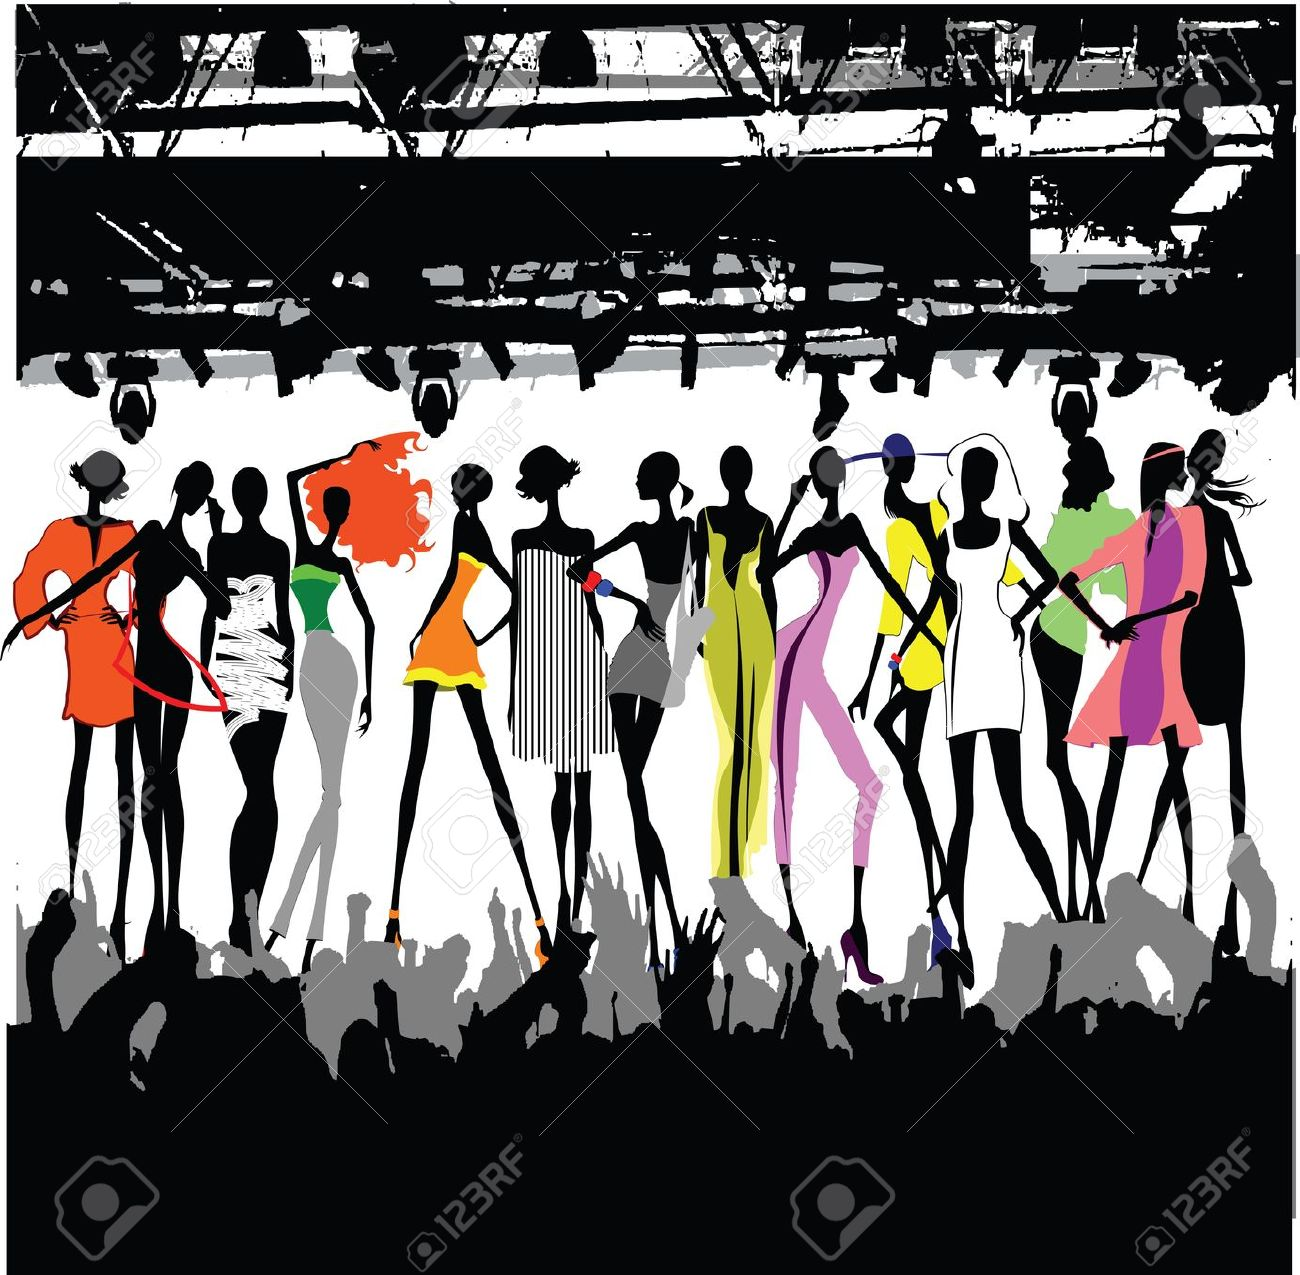 Runway fashion clipart 8 » Clipart Station.